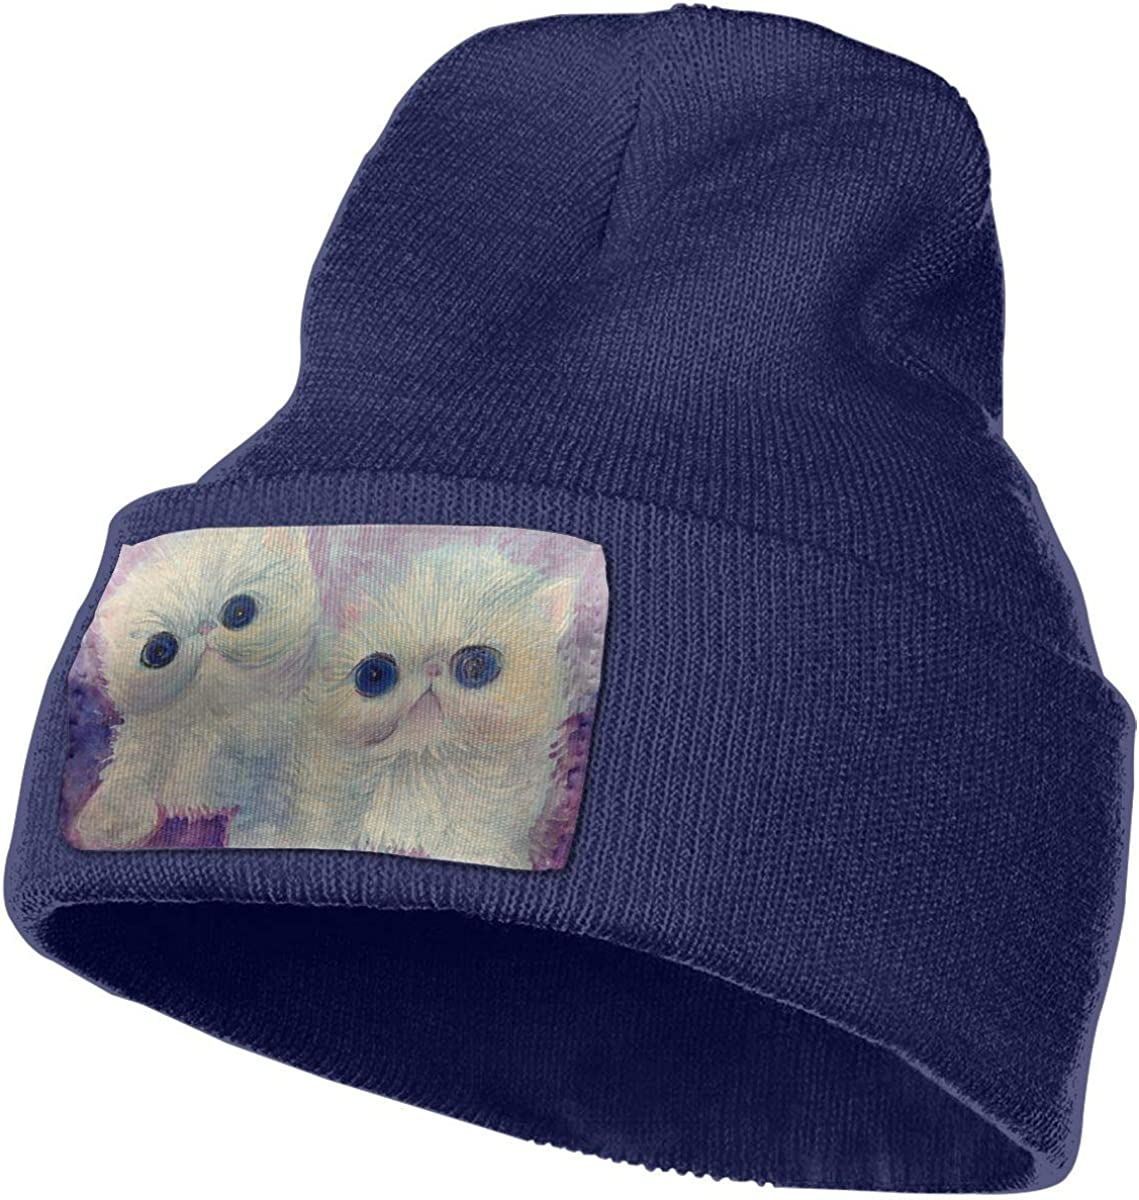 JimHappy A Friends for Life Hat for Men and Women Winter Warm Hats Knit Slouchy Thick Skull Cap